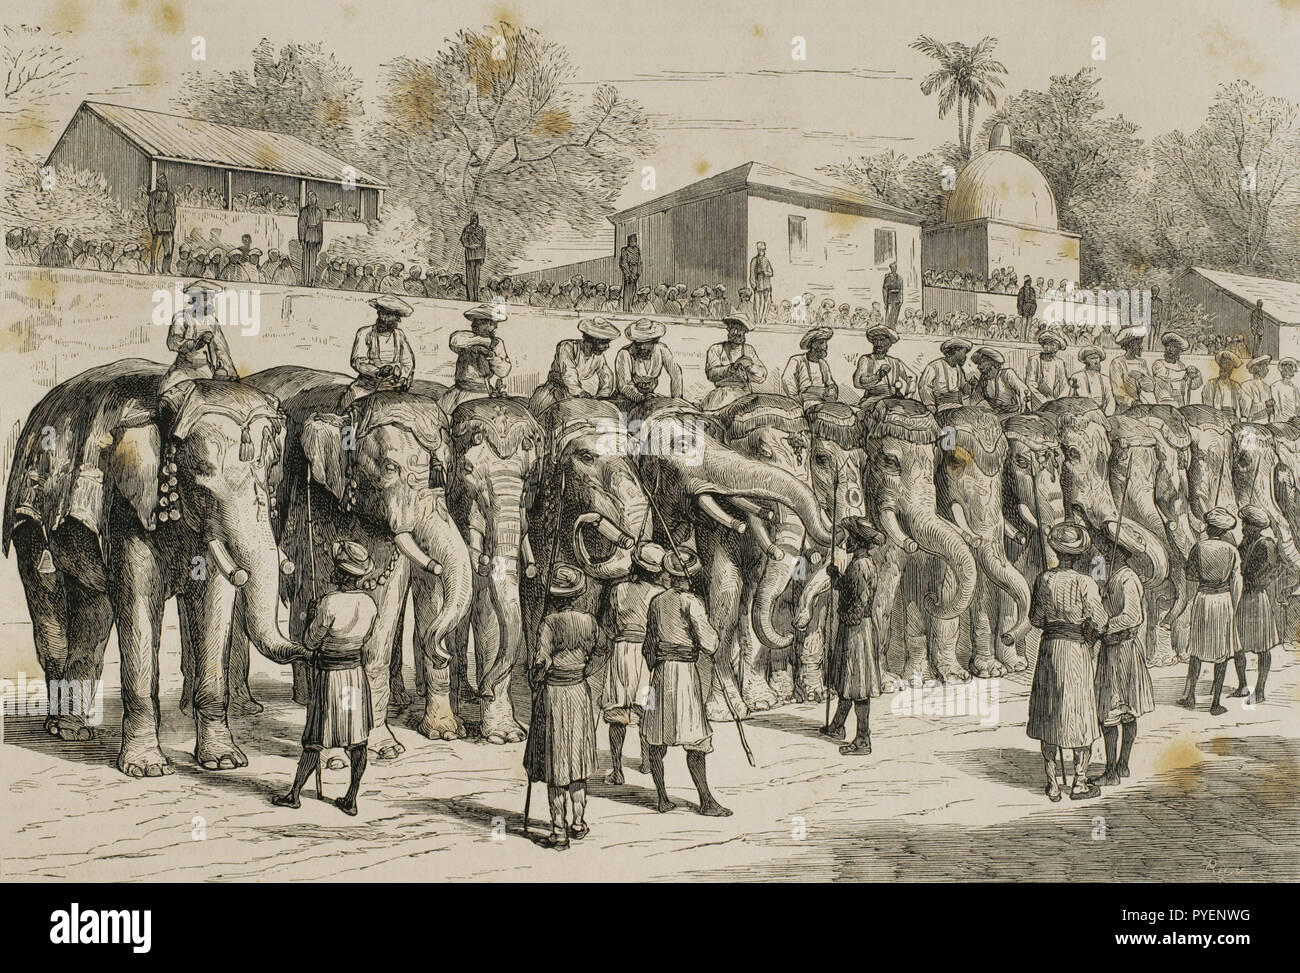 British colonialism. Journey of the Prince of Wales (1841-1910) to India. Later he would become the King Edward VII of the United Kingdom. Review to the elephants of Guicowar in honour to the Prince. City of Baroda or Vadodara. Engraving by Rico. La Ilustracion Española y Americana, January 22 of 1876. Stock Photo